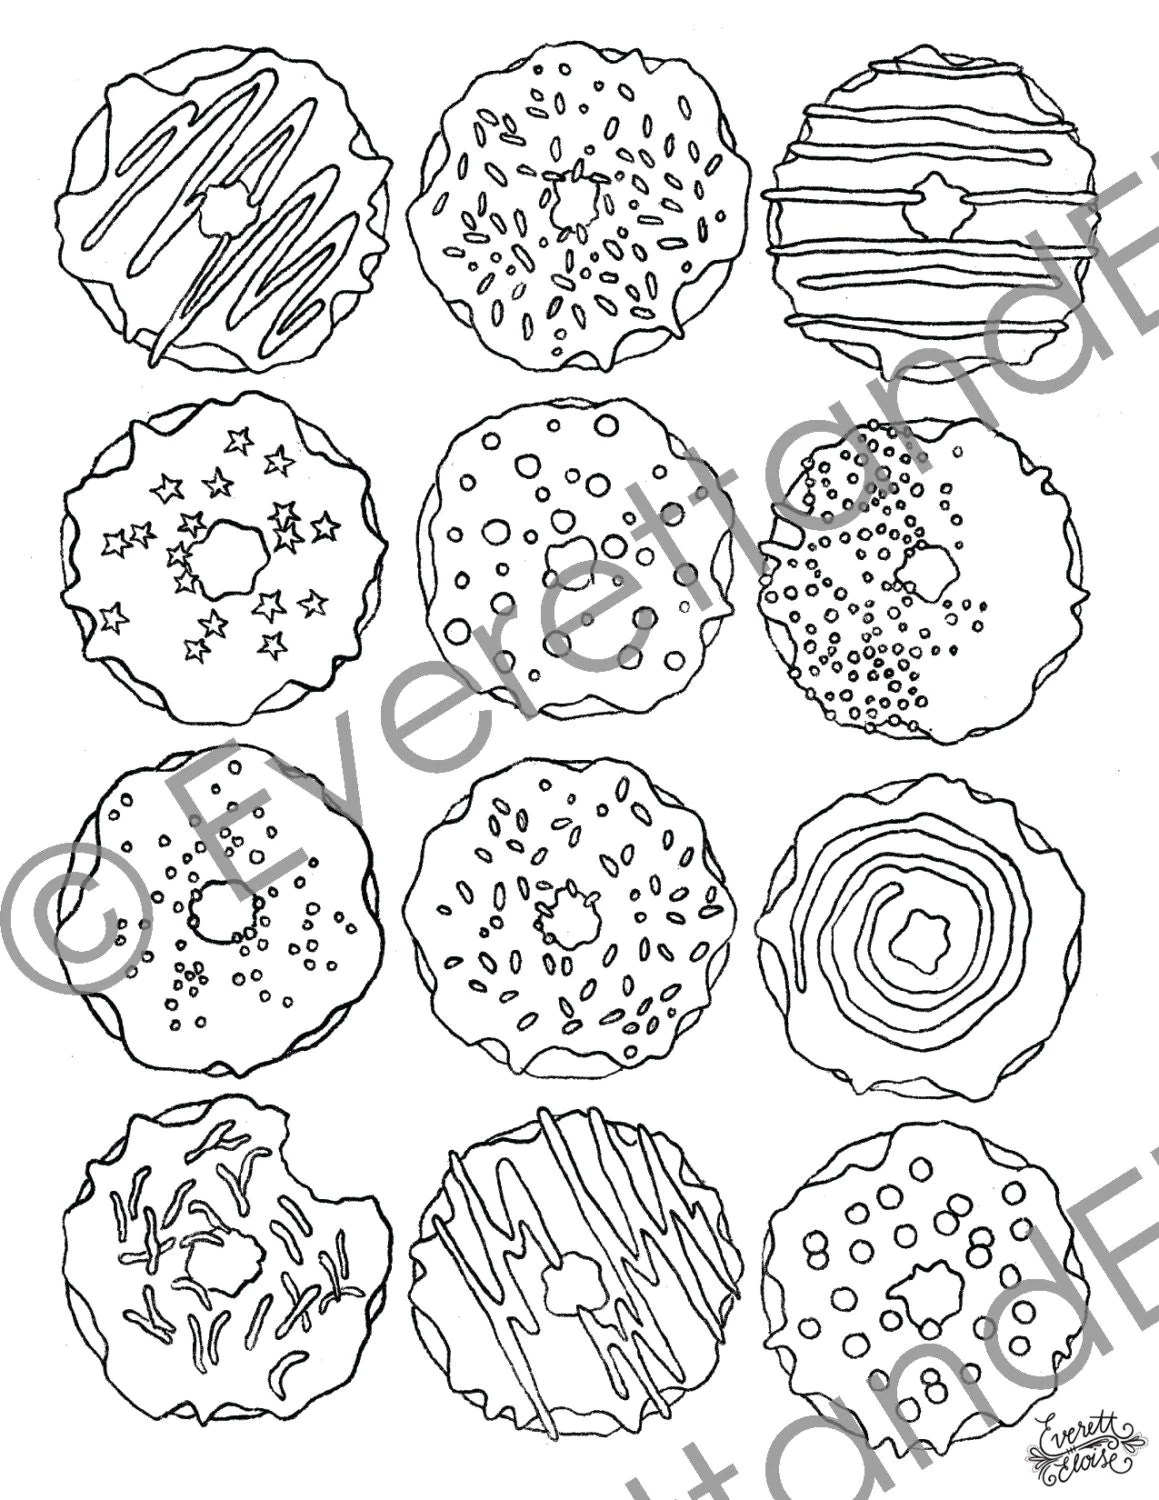 If You Give A Dog A Donut Coloring Pages Coloring Pages